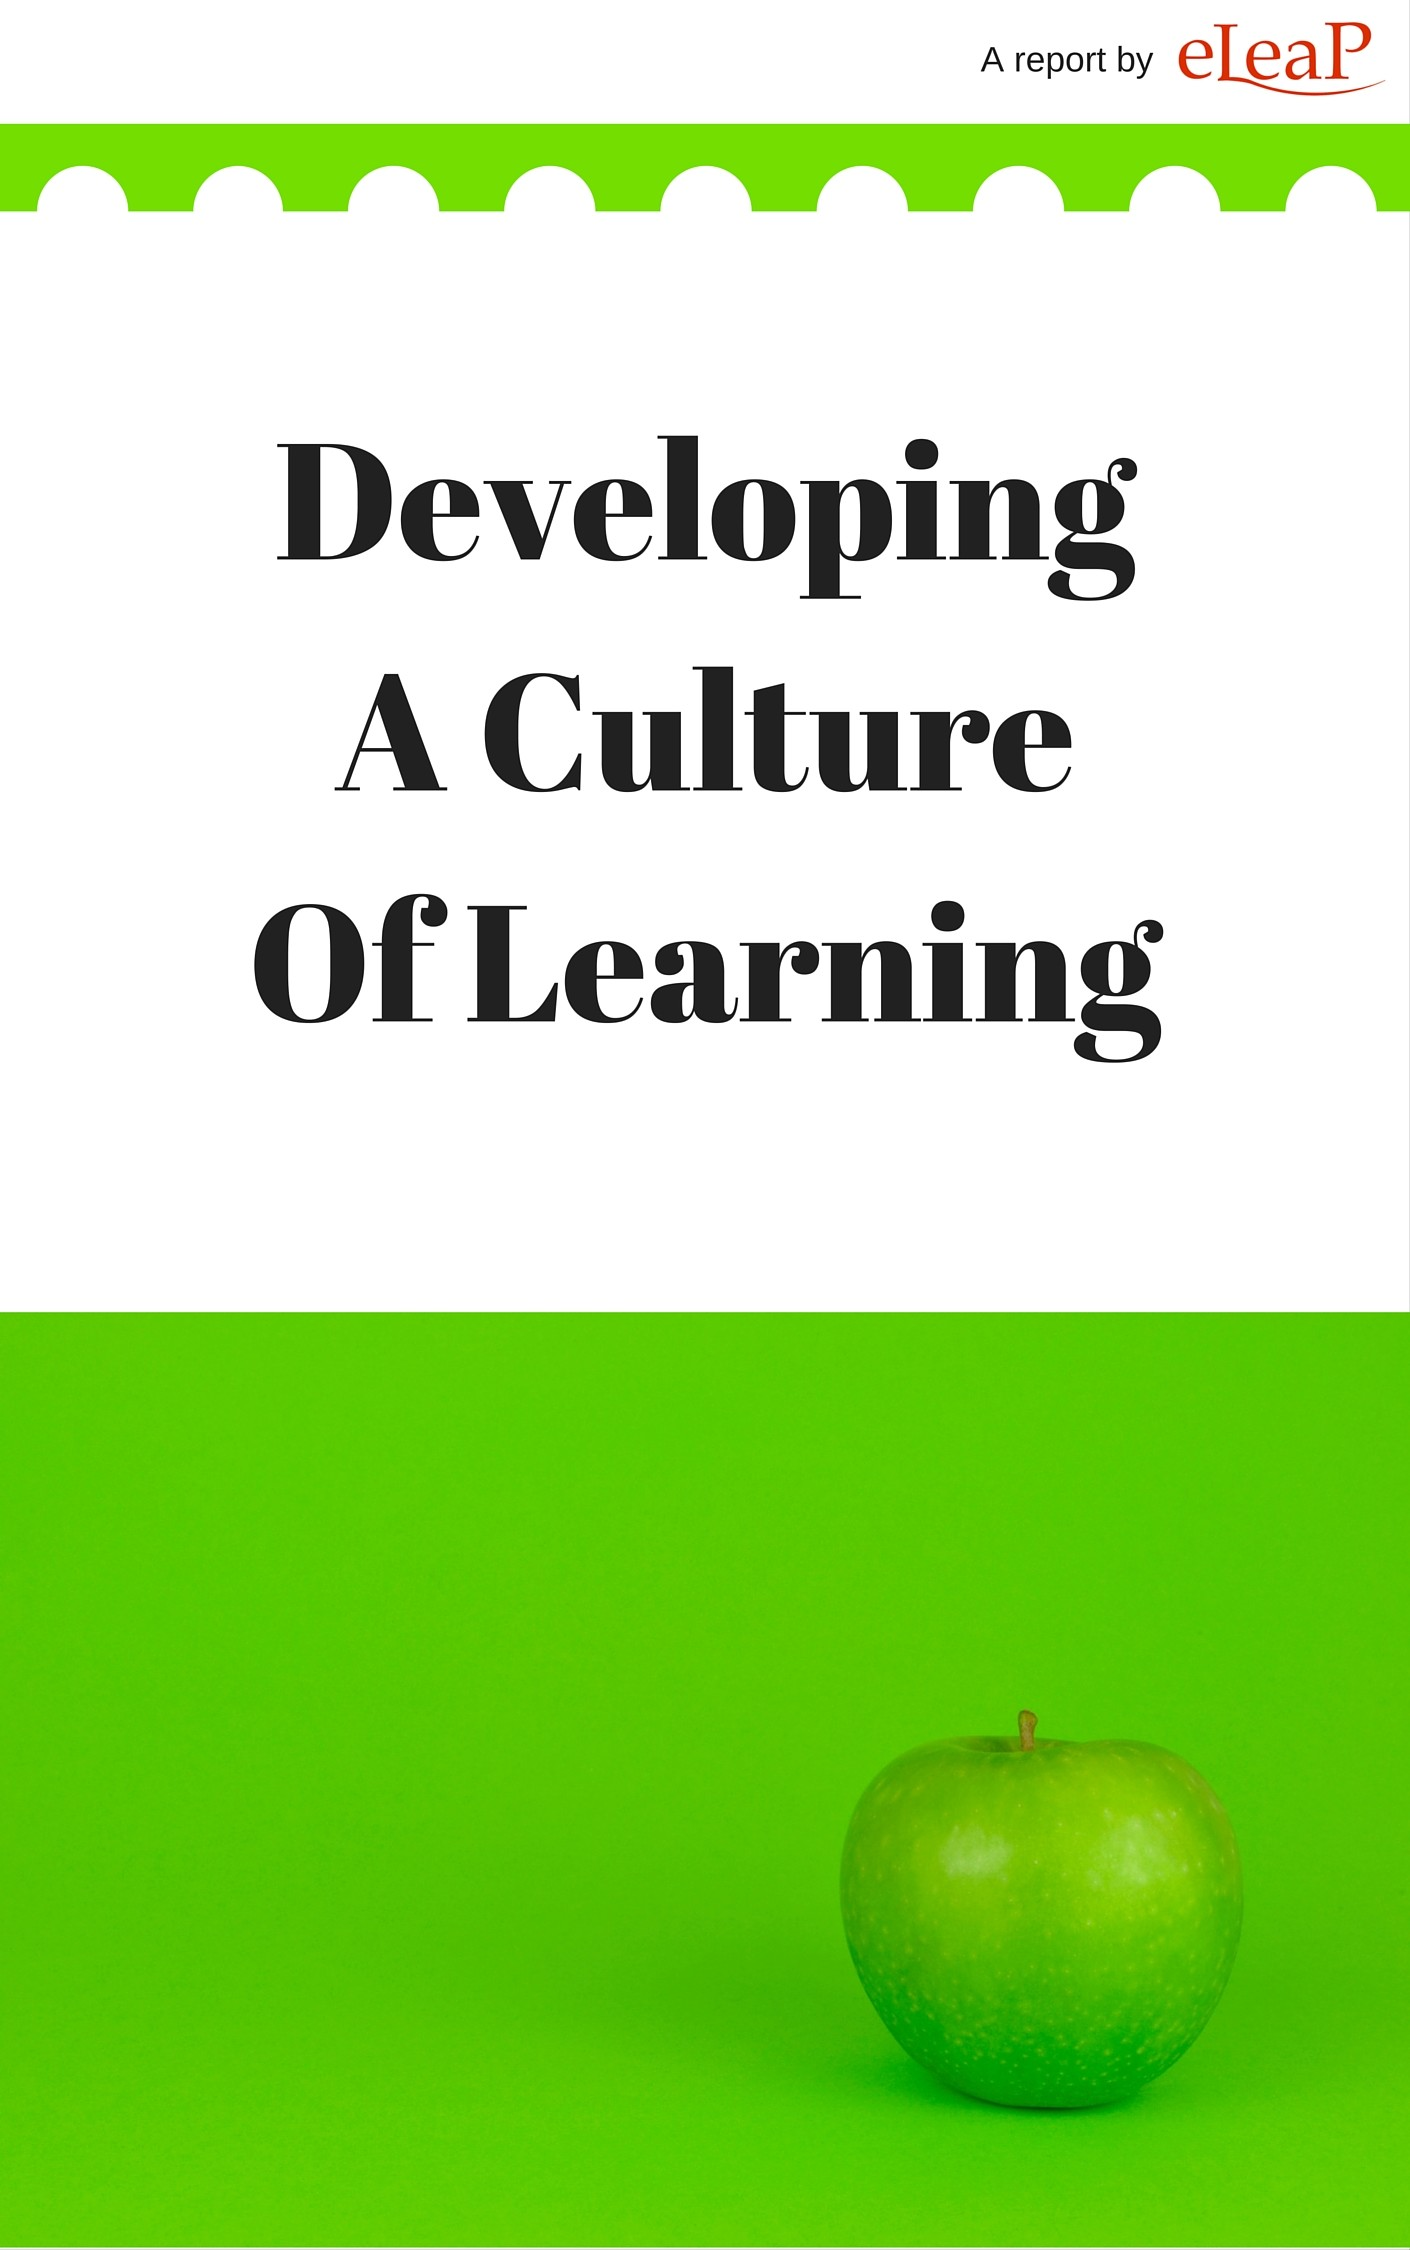 learning-culture